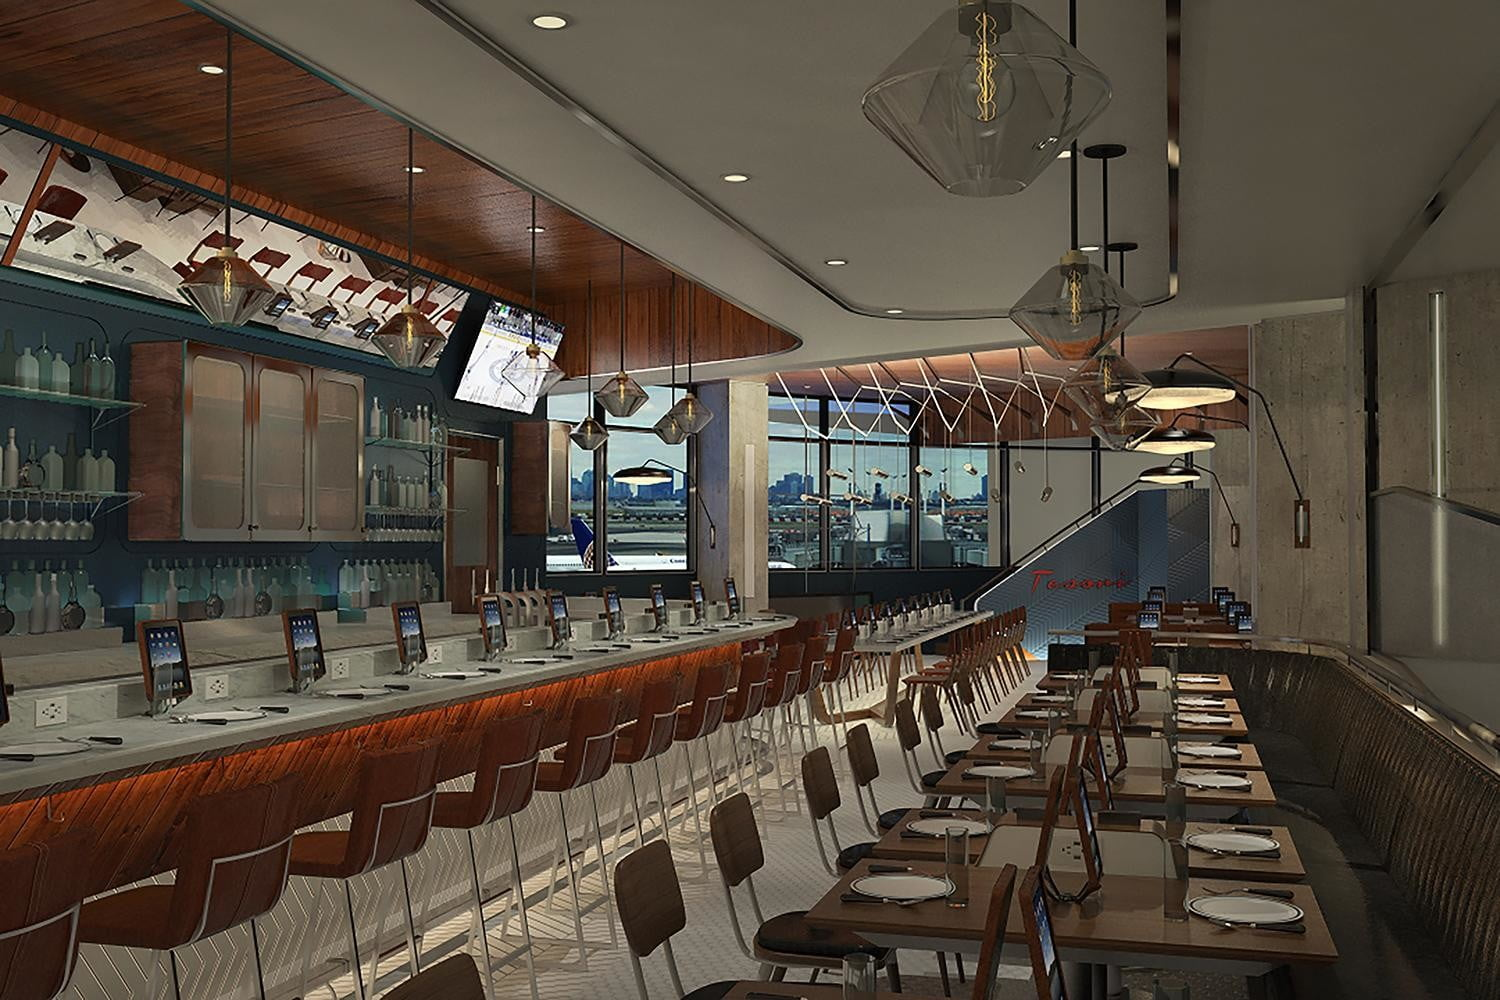 ipads are replacing waiters in airport restaurants pld c1 f1 tesori view1  low res print anyway